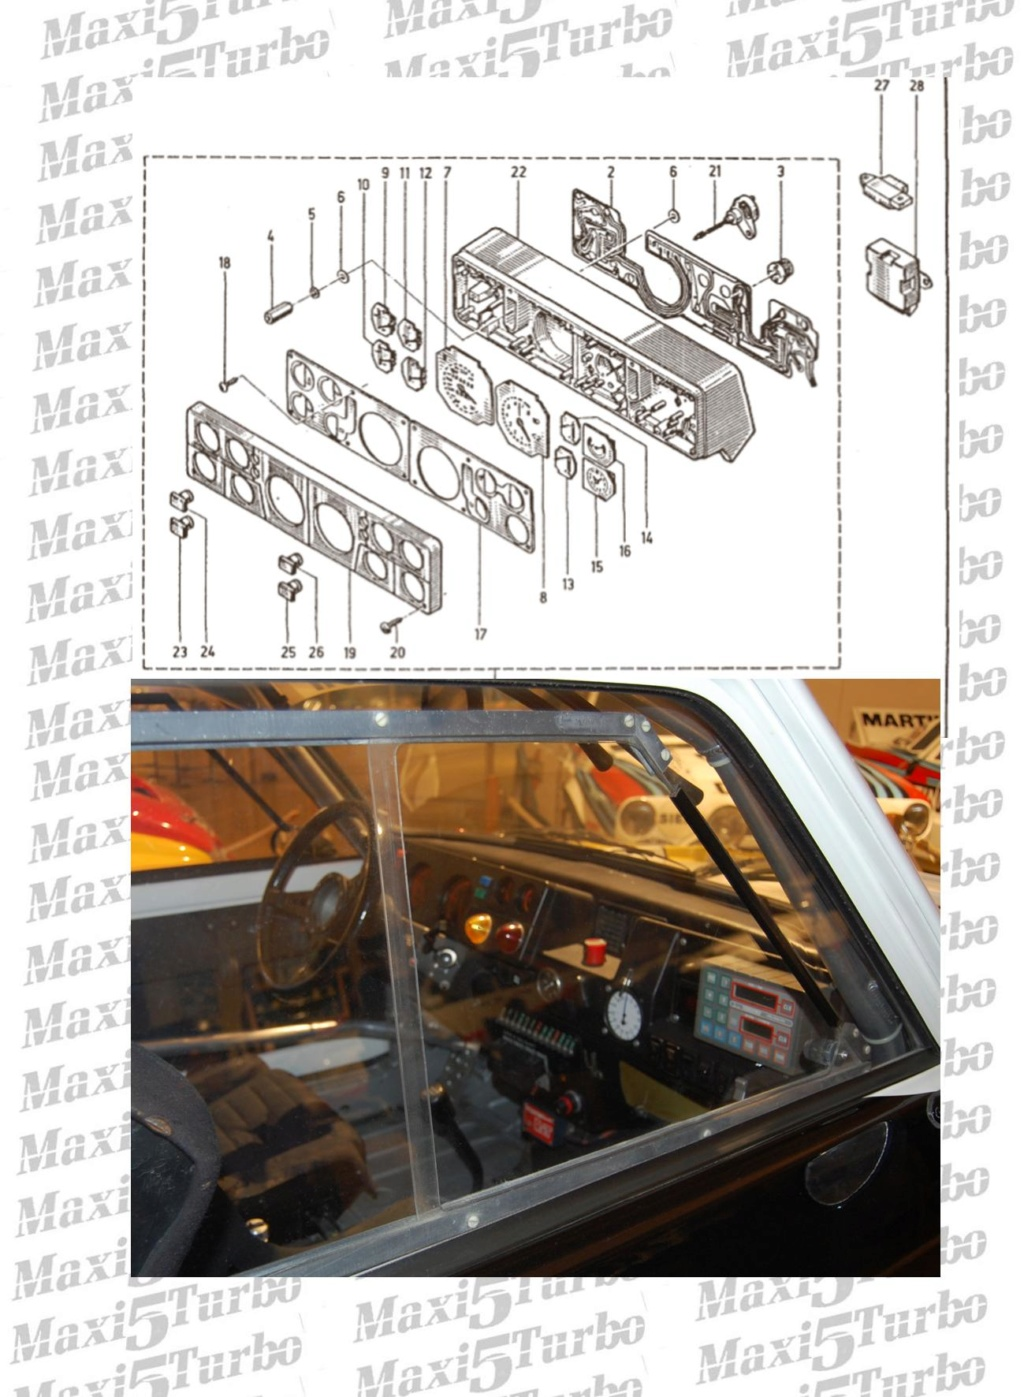 (1/24) Renault 5 Maxi turbo Ref 80717 ( Hors delai ) - Page 6 7910